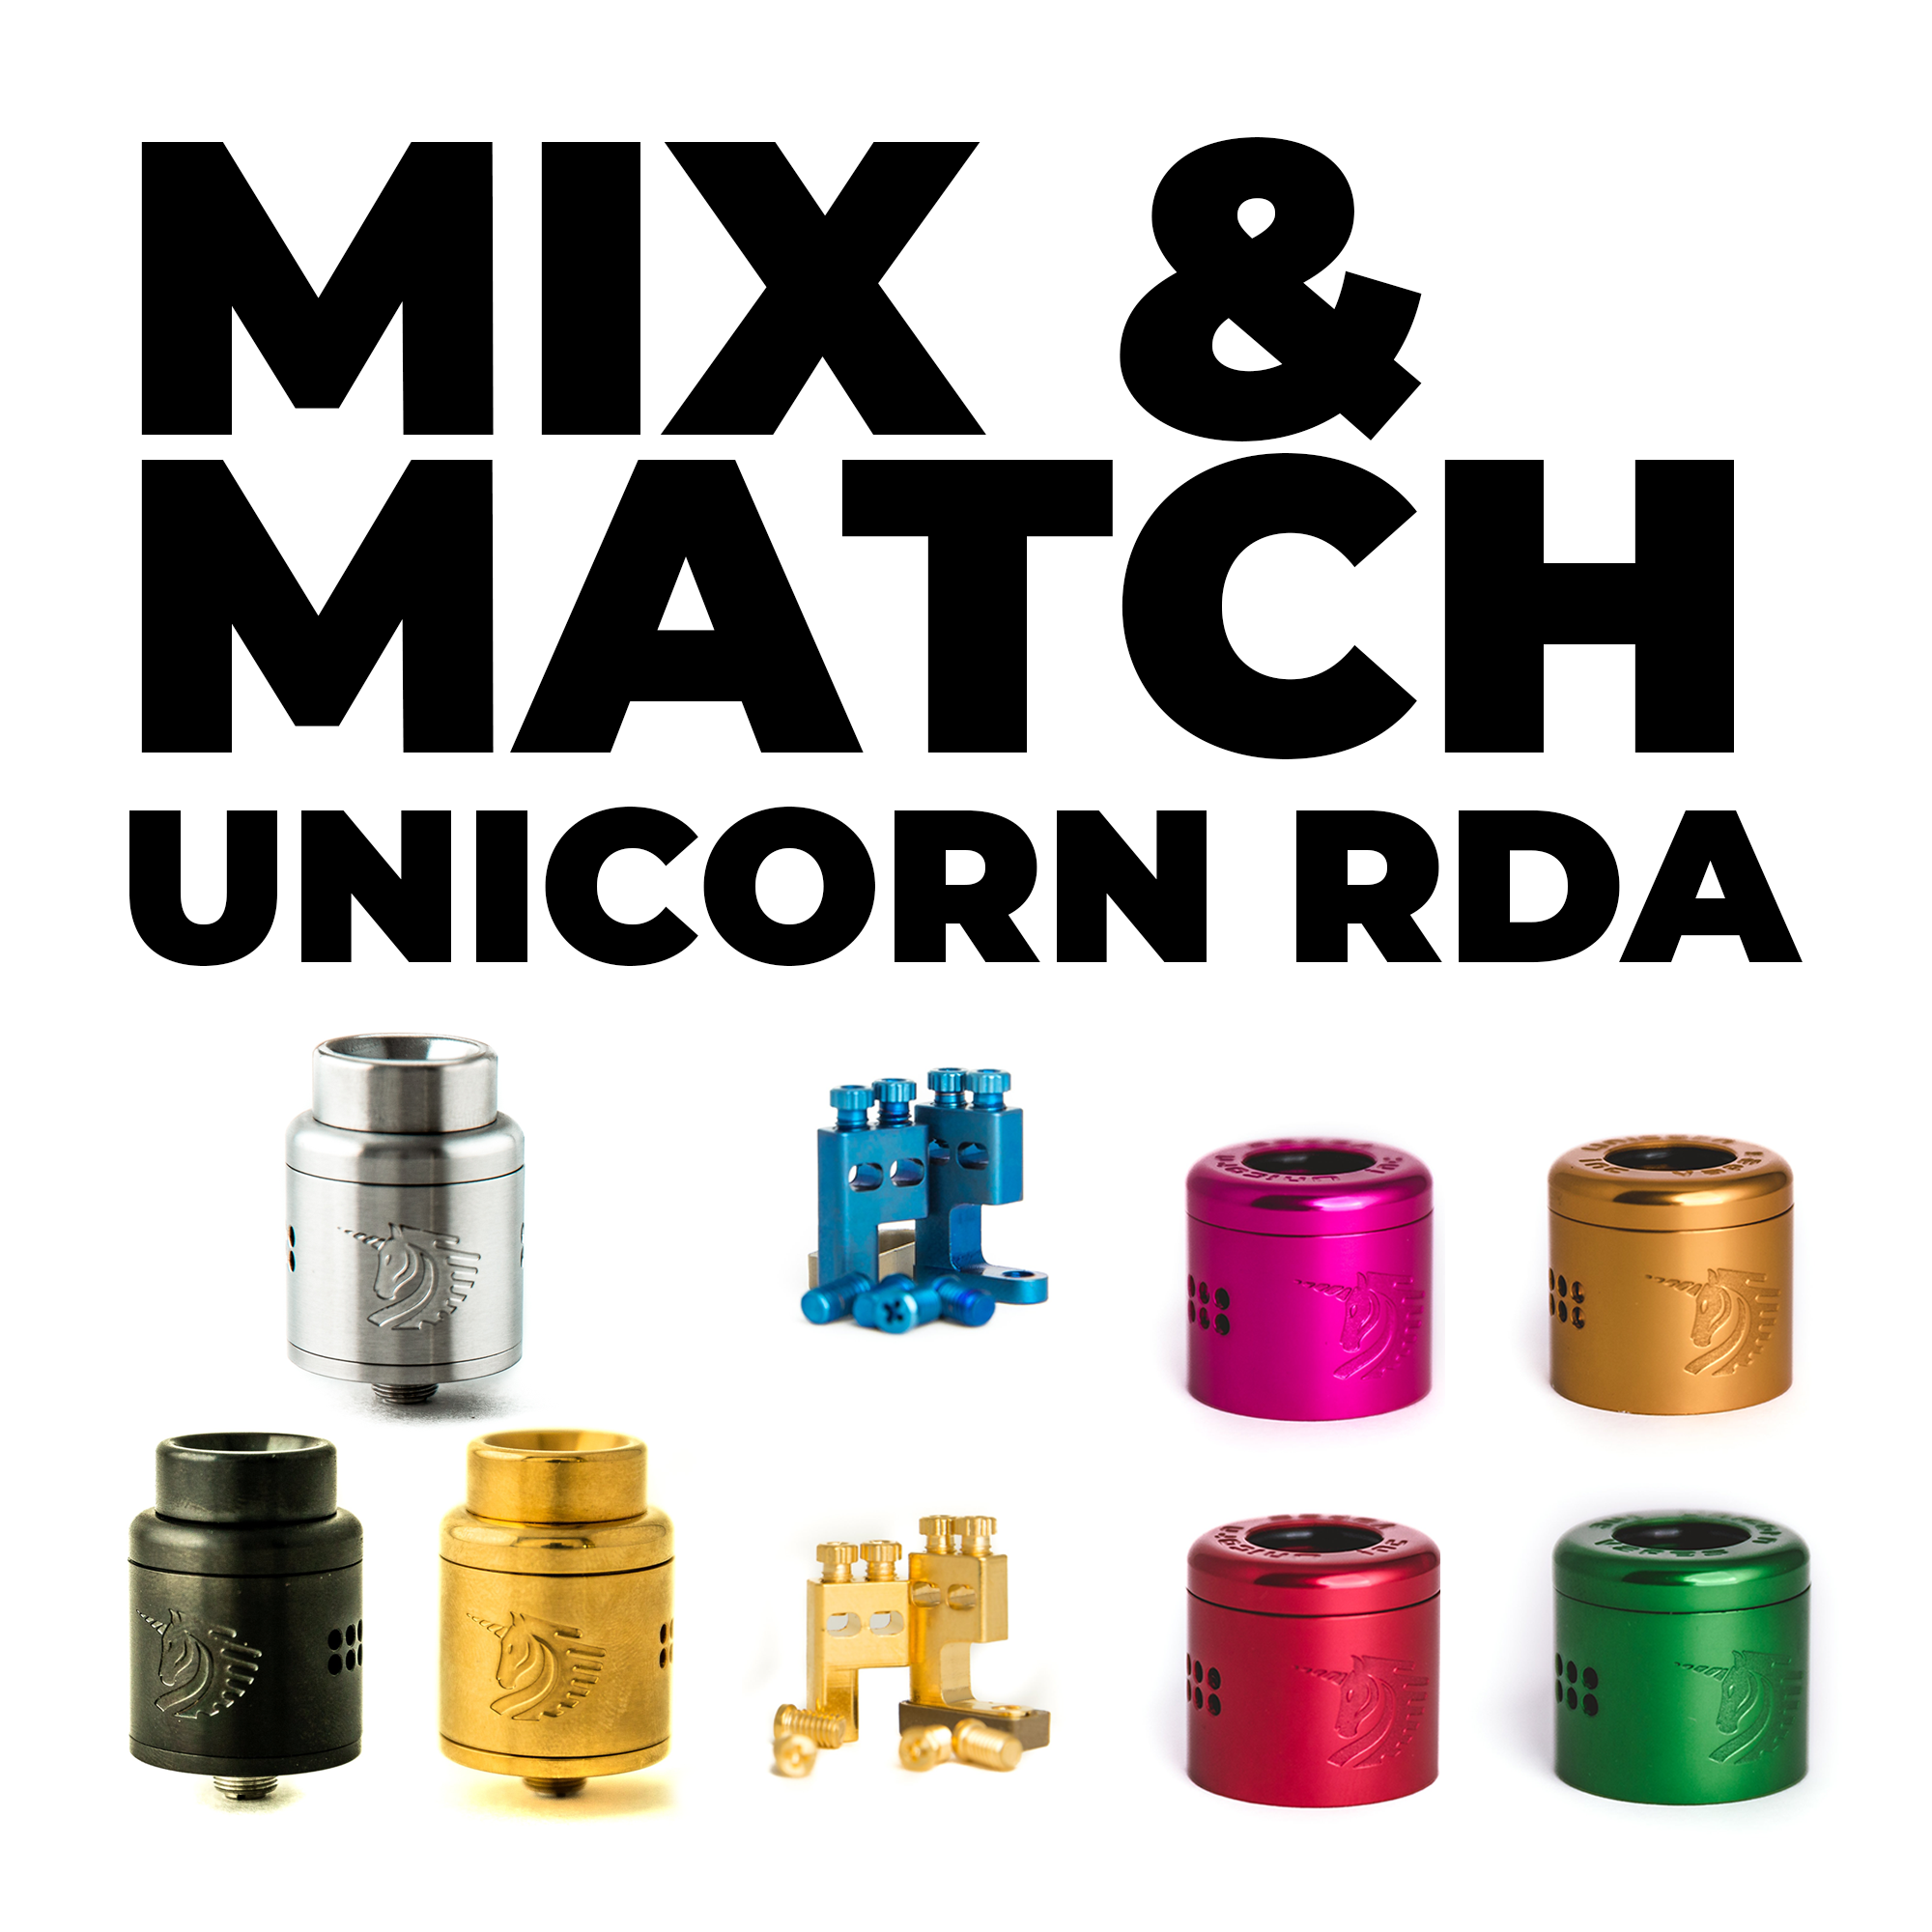 Mix & Match Unicorn RDA